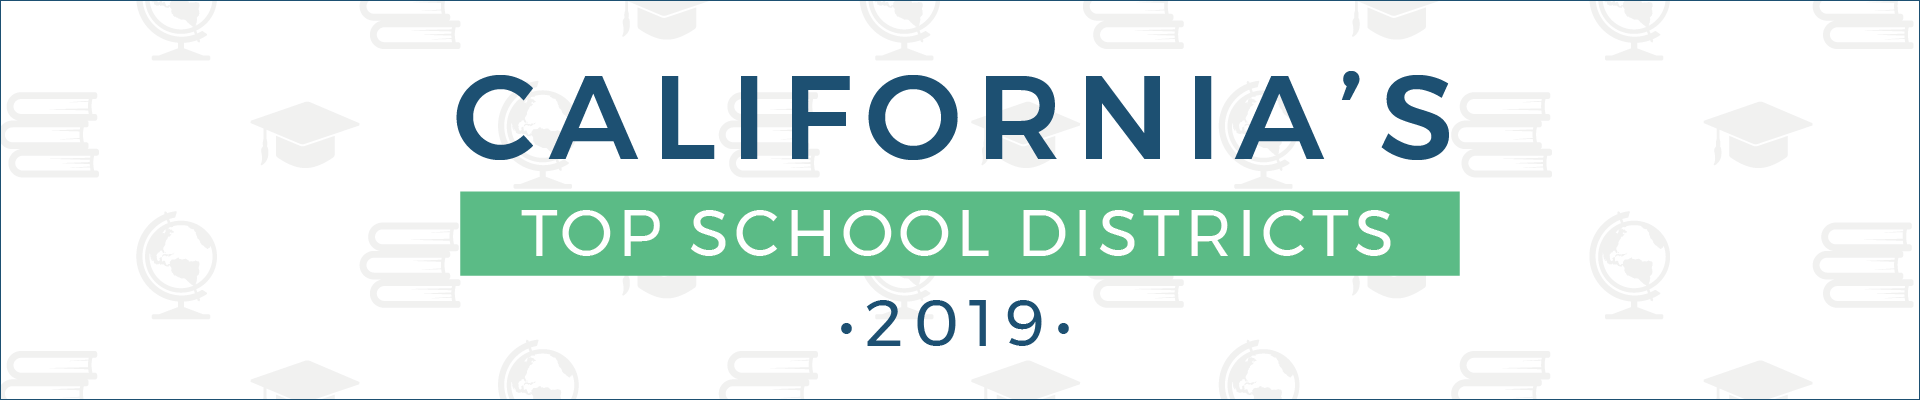 top school districts, 2019 - california - banner